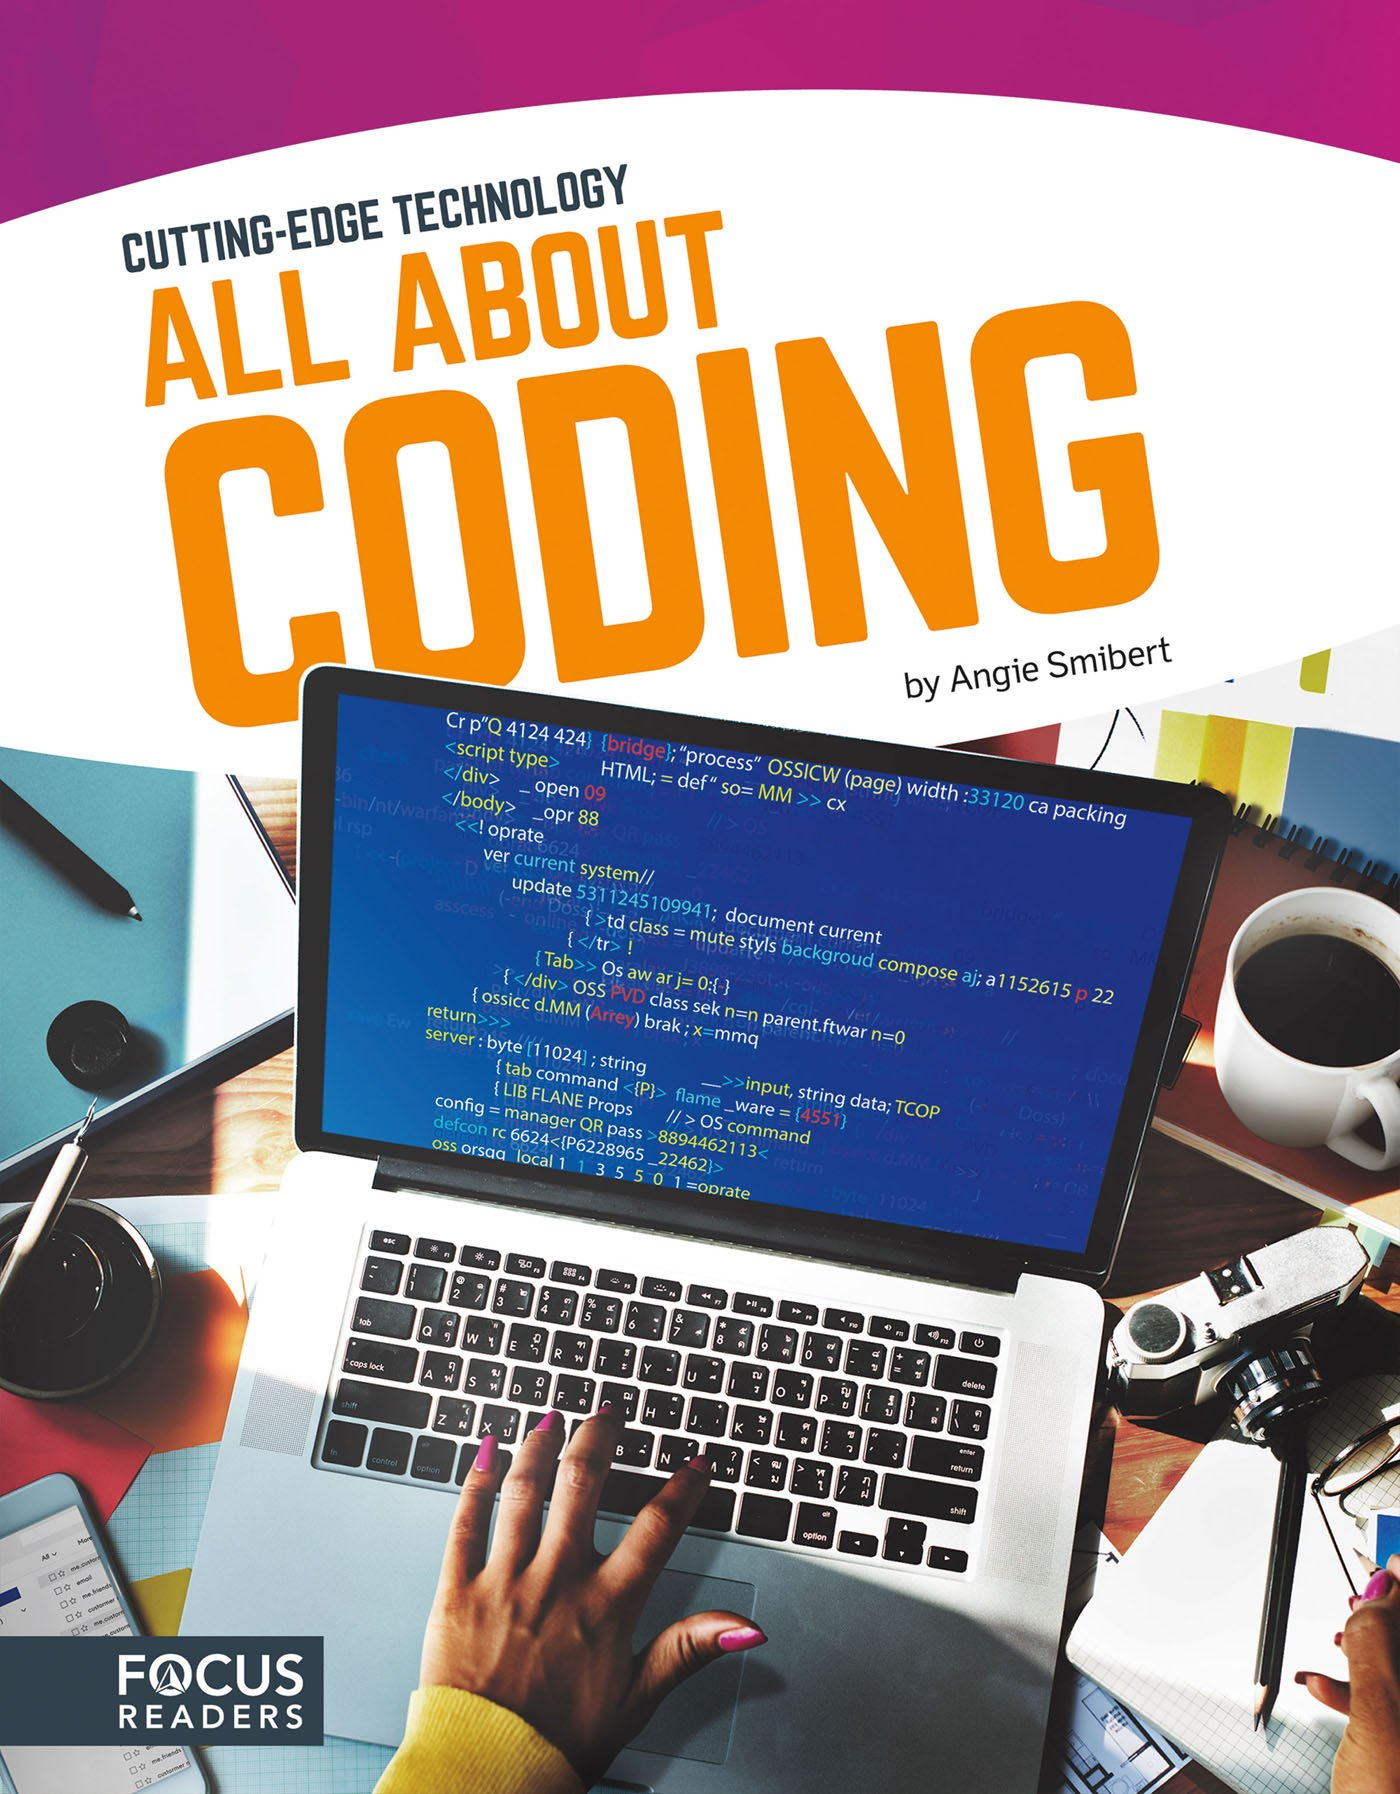 All About Coding (Cutting-Edge Technology)